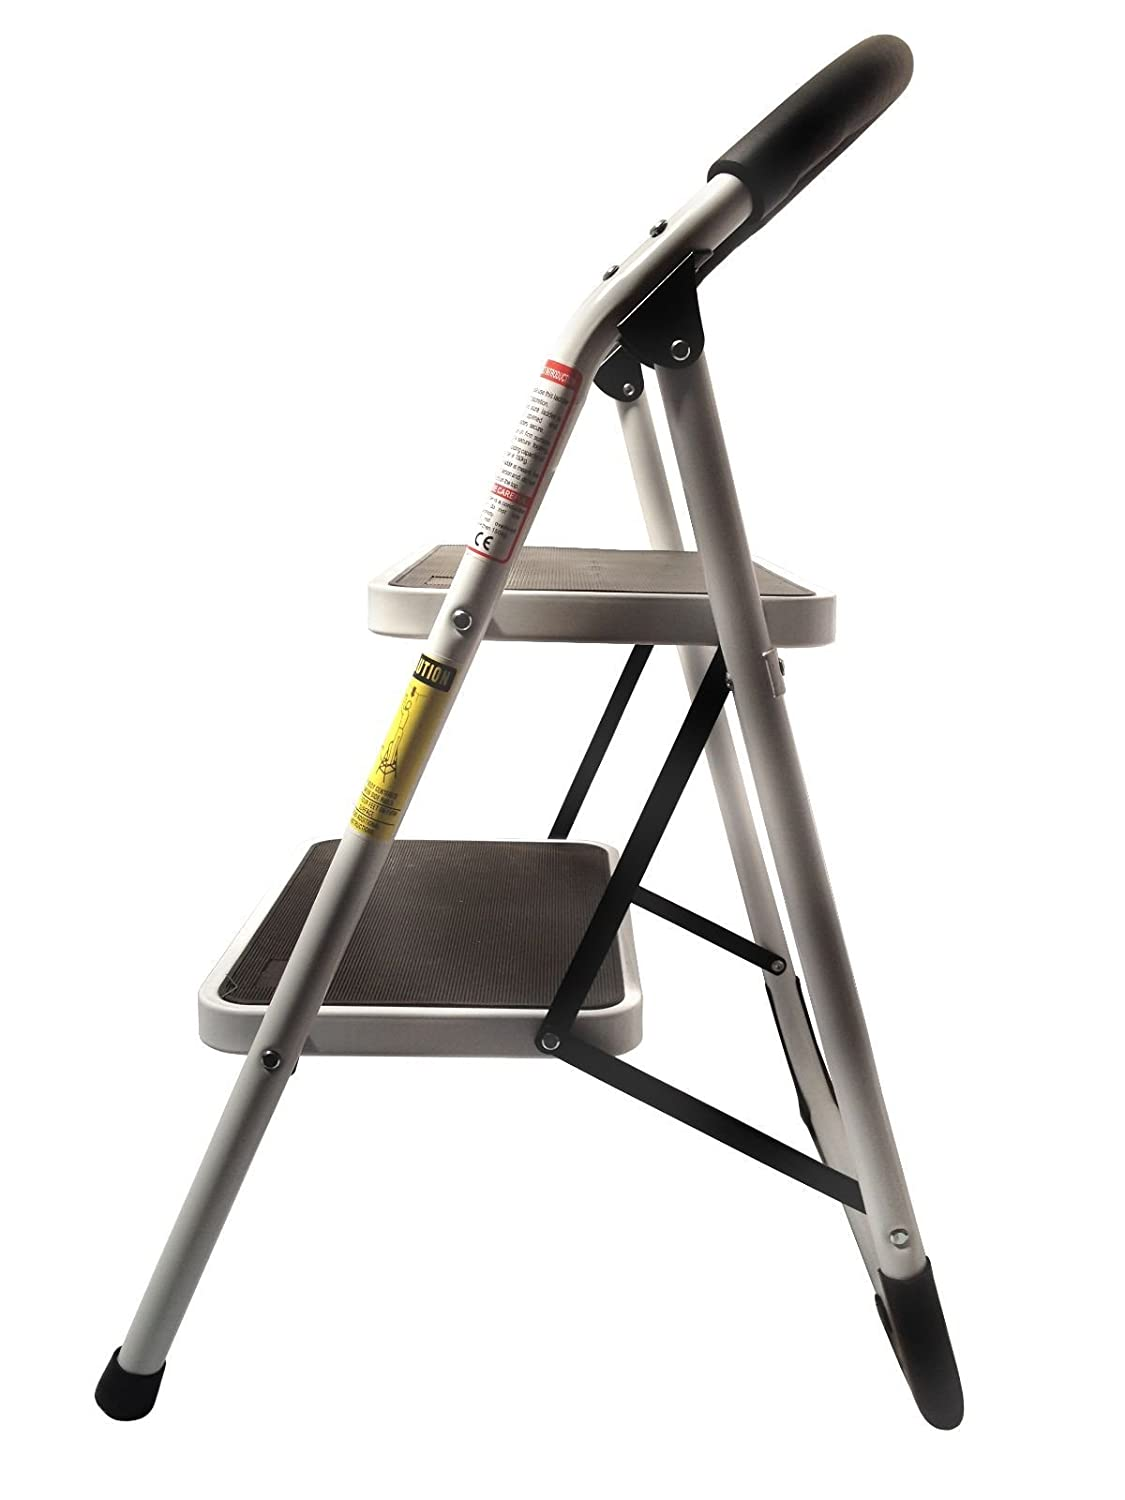 StepUp Heavy Duty Steel Reinforced Folding 2 Step Ladder Stool - 330 lbs Capacity - - Amazon.com  sc 1 st  Amazon.com & StepUp Heavy Duty Steel Reinforced Folding 2 Step Ladder Stool ... islam-shia.org